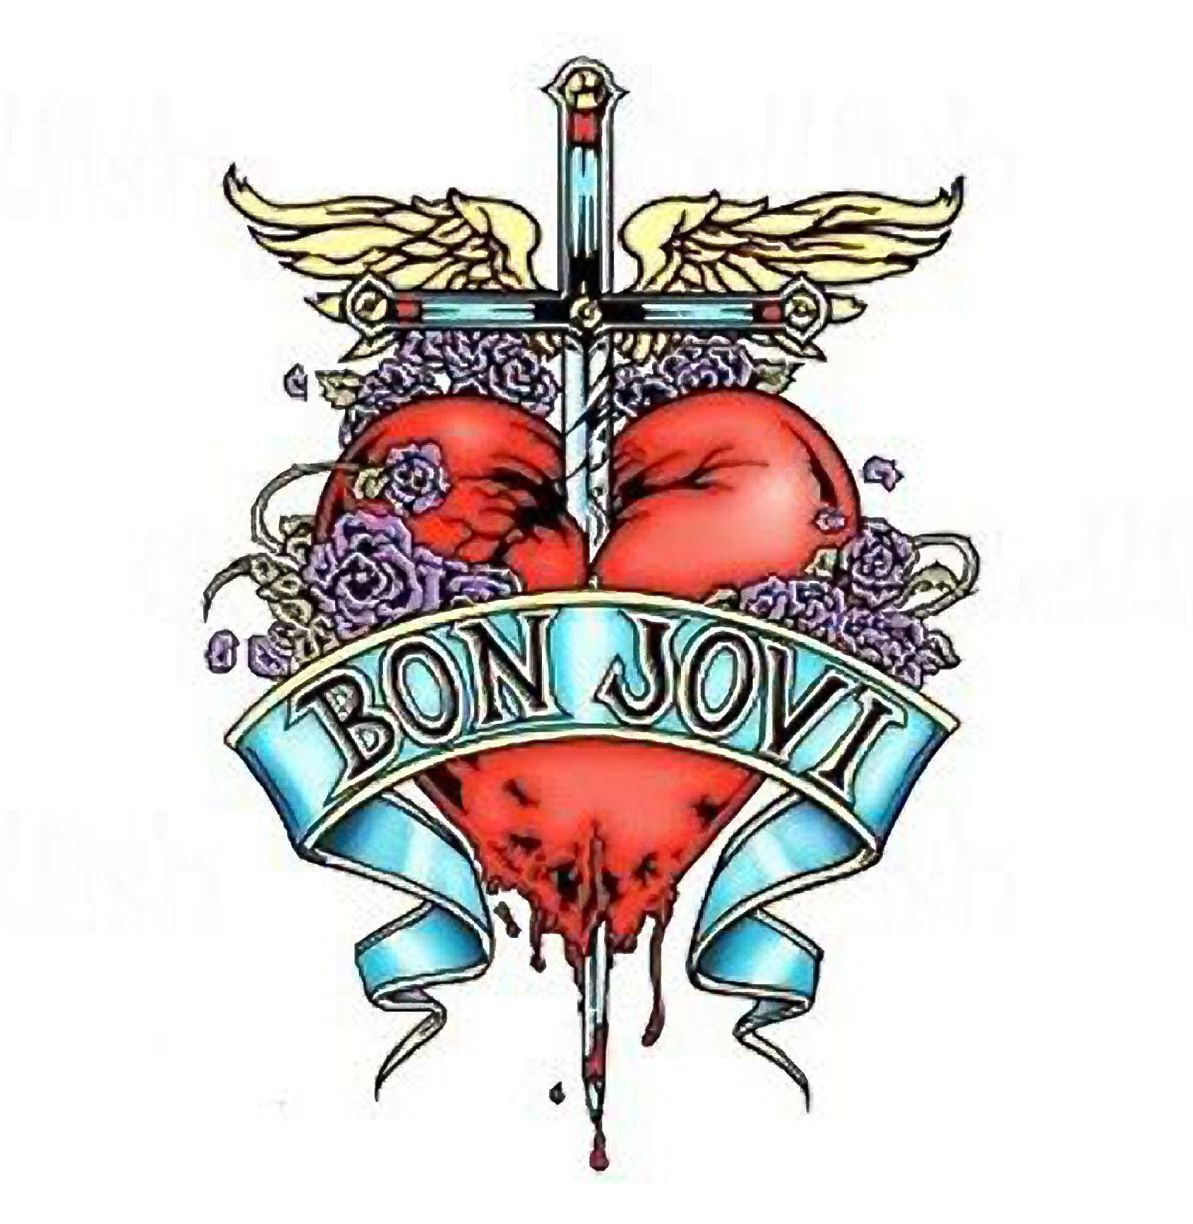 bon jovi logo 1 193 1 224 pixels jon bon jovi pinterest. Black Bedroom Furniture Sets. Home Design Ideas